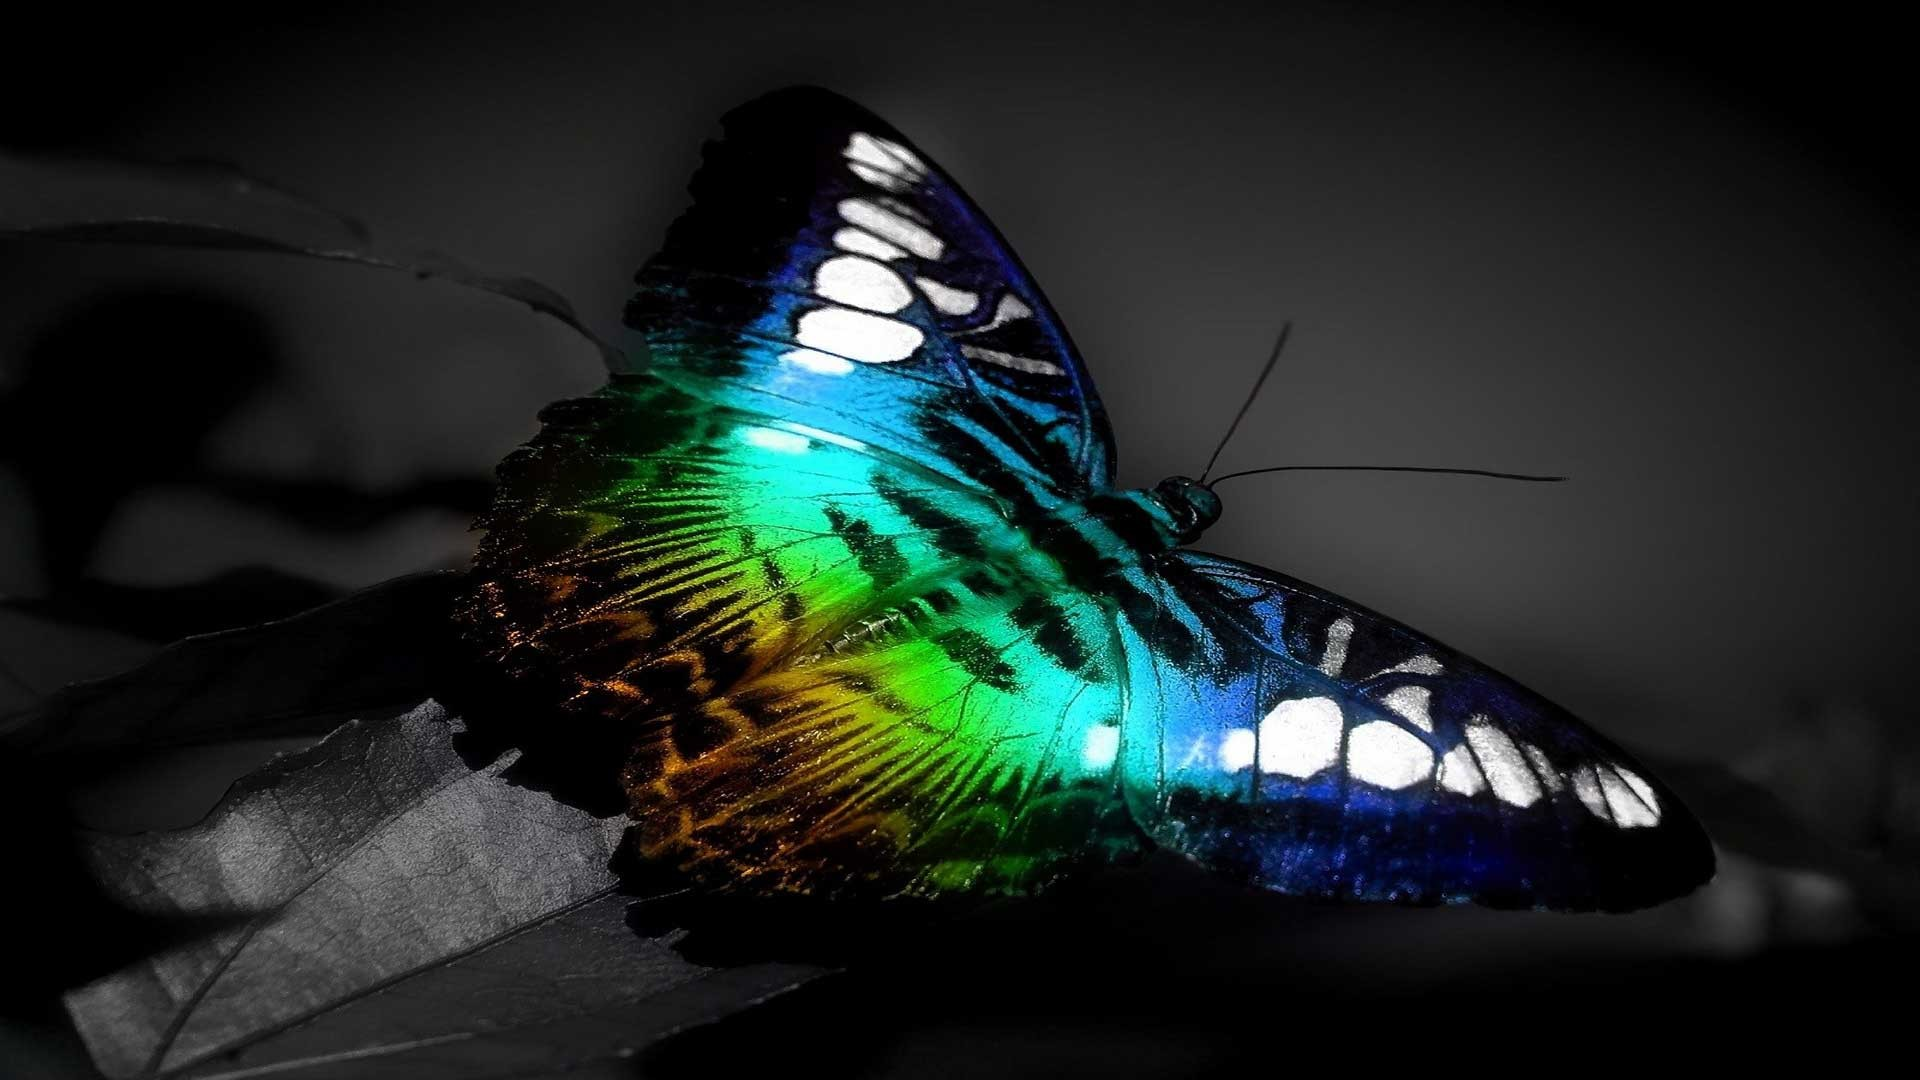 1920x1080 Colorful Butterfly 3D Full HD Wallpaper.